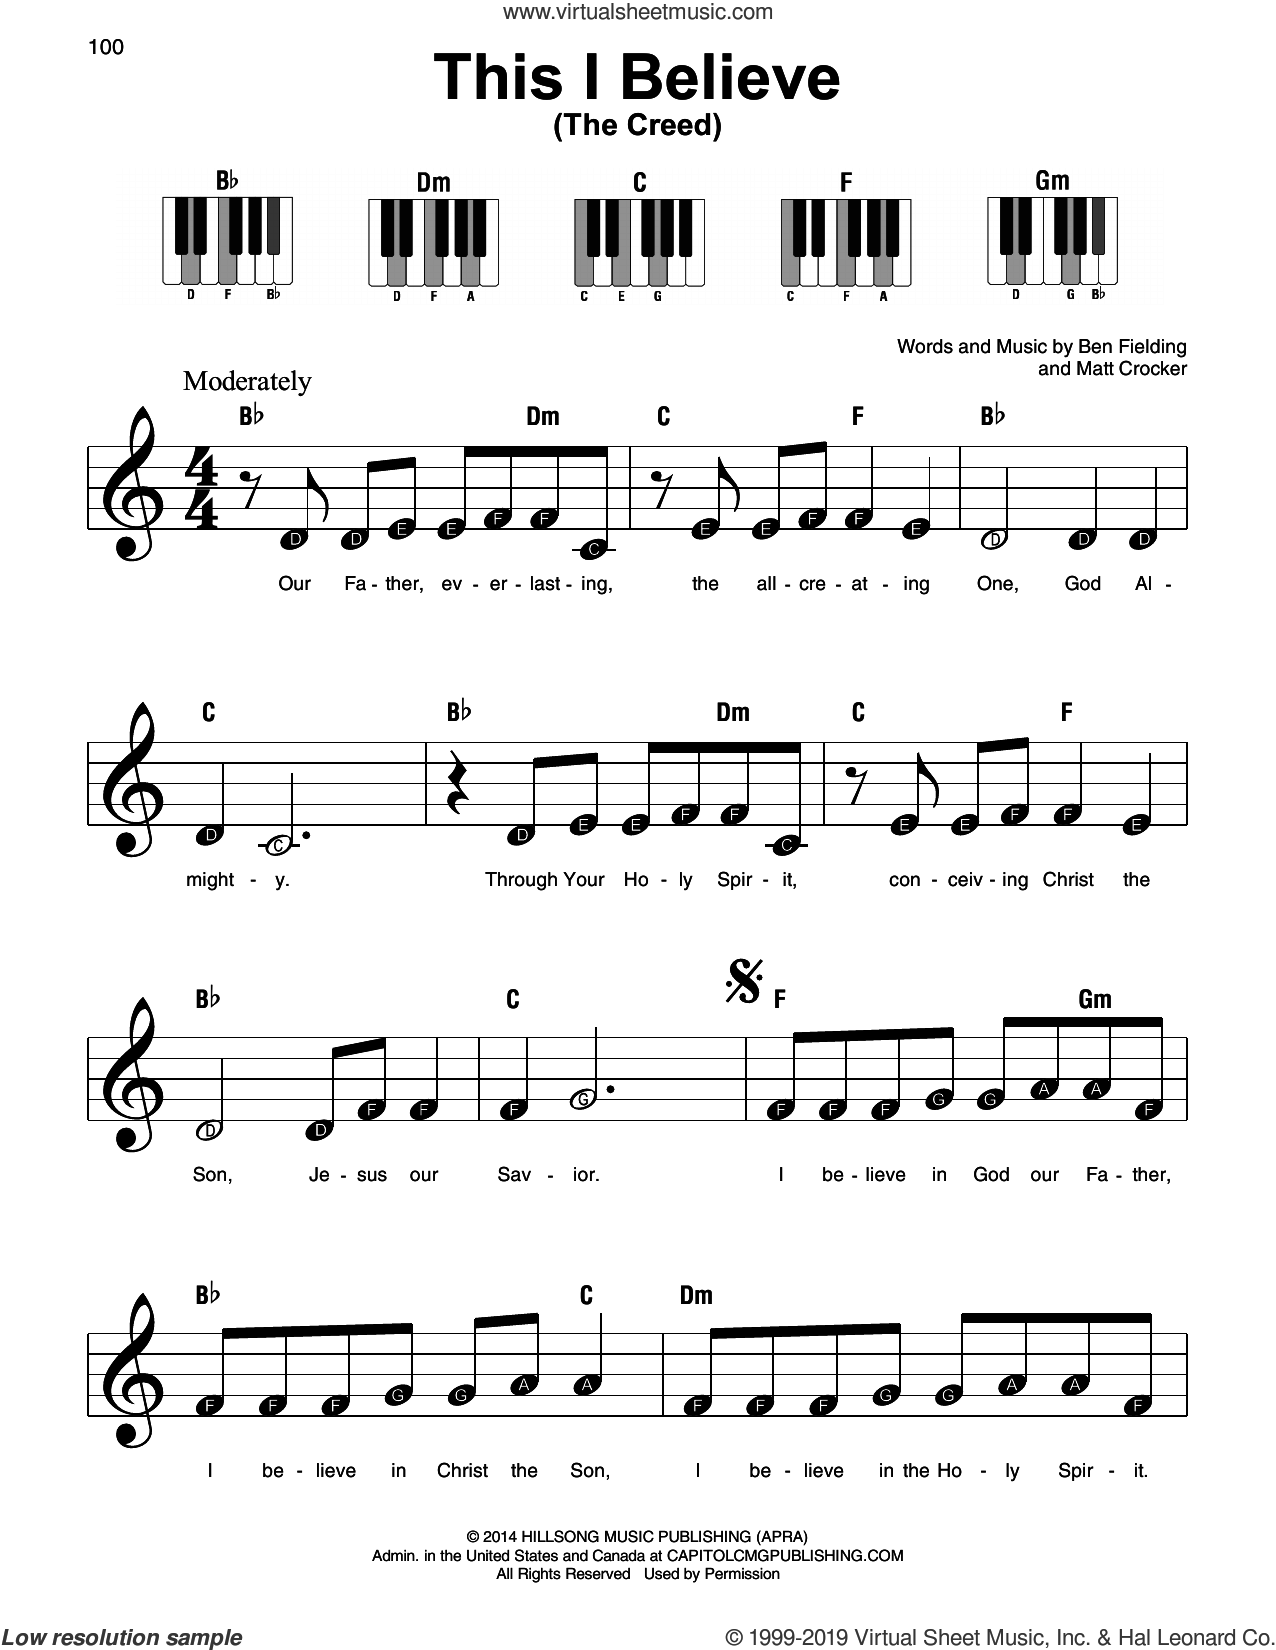 This I Believe (The Creed) sheet music for piano solo by Hillsong Worship, Ben Fielding and Matt Crocker, beginner skill level